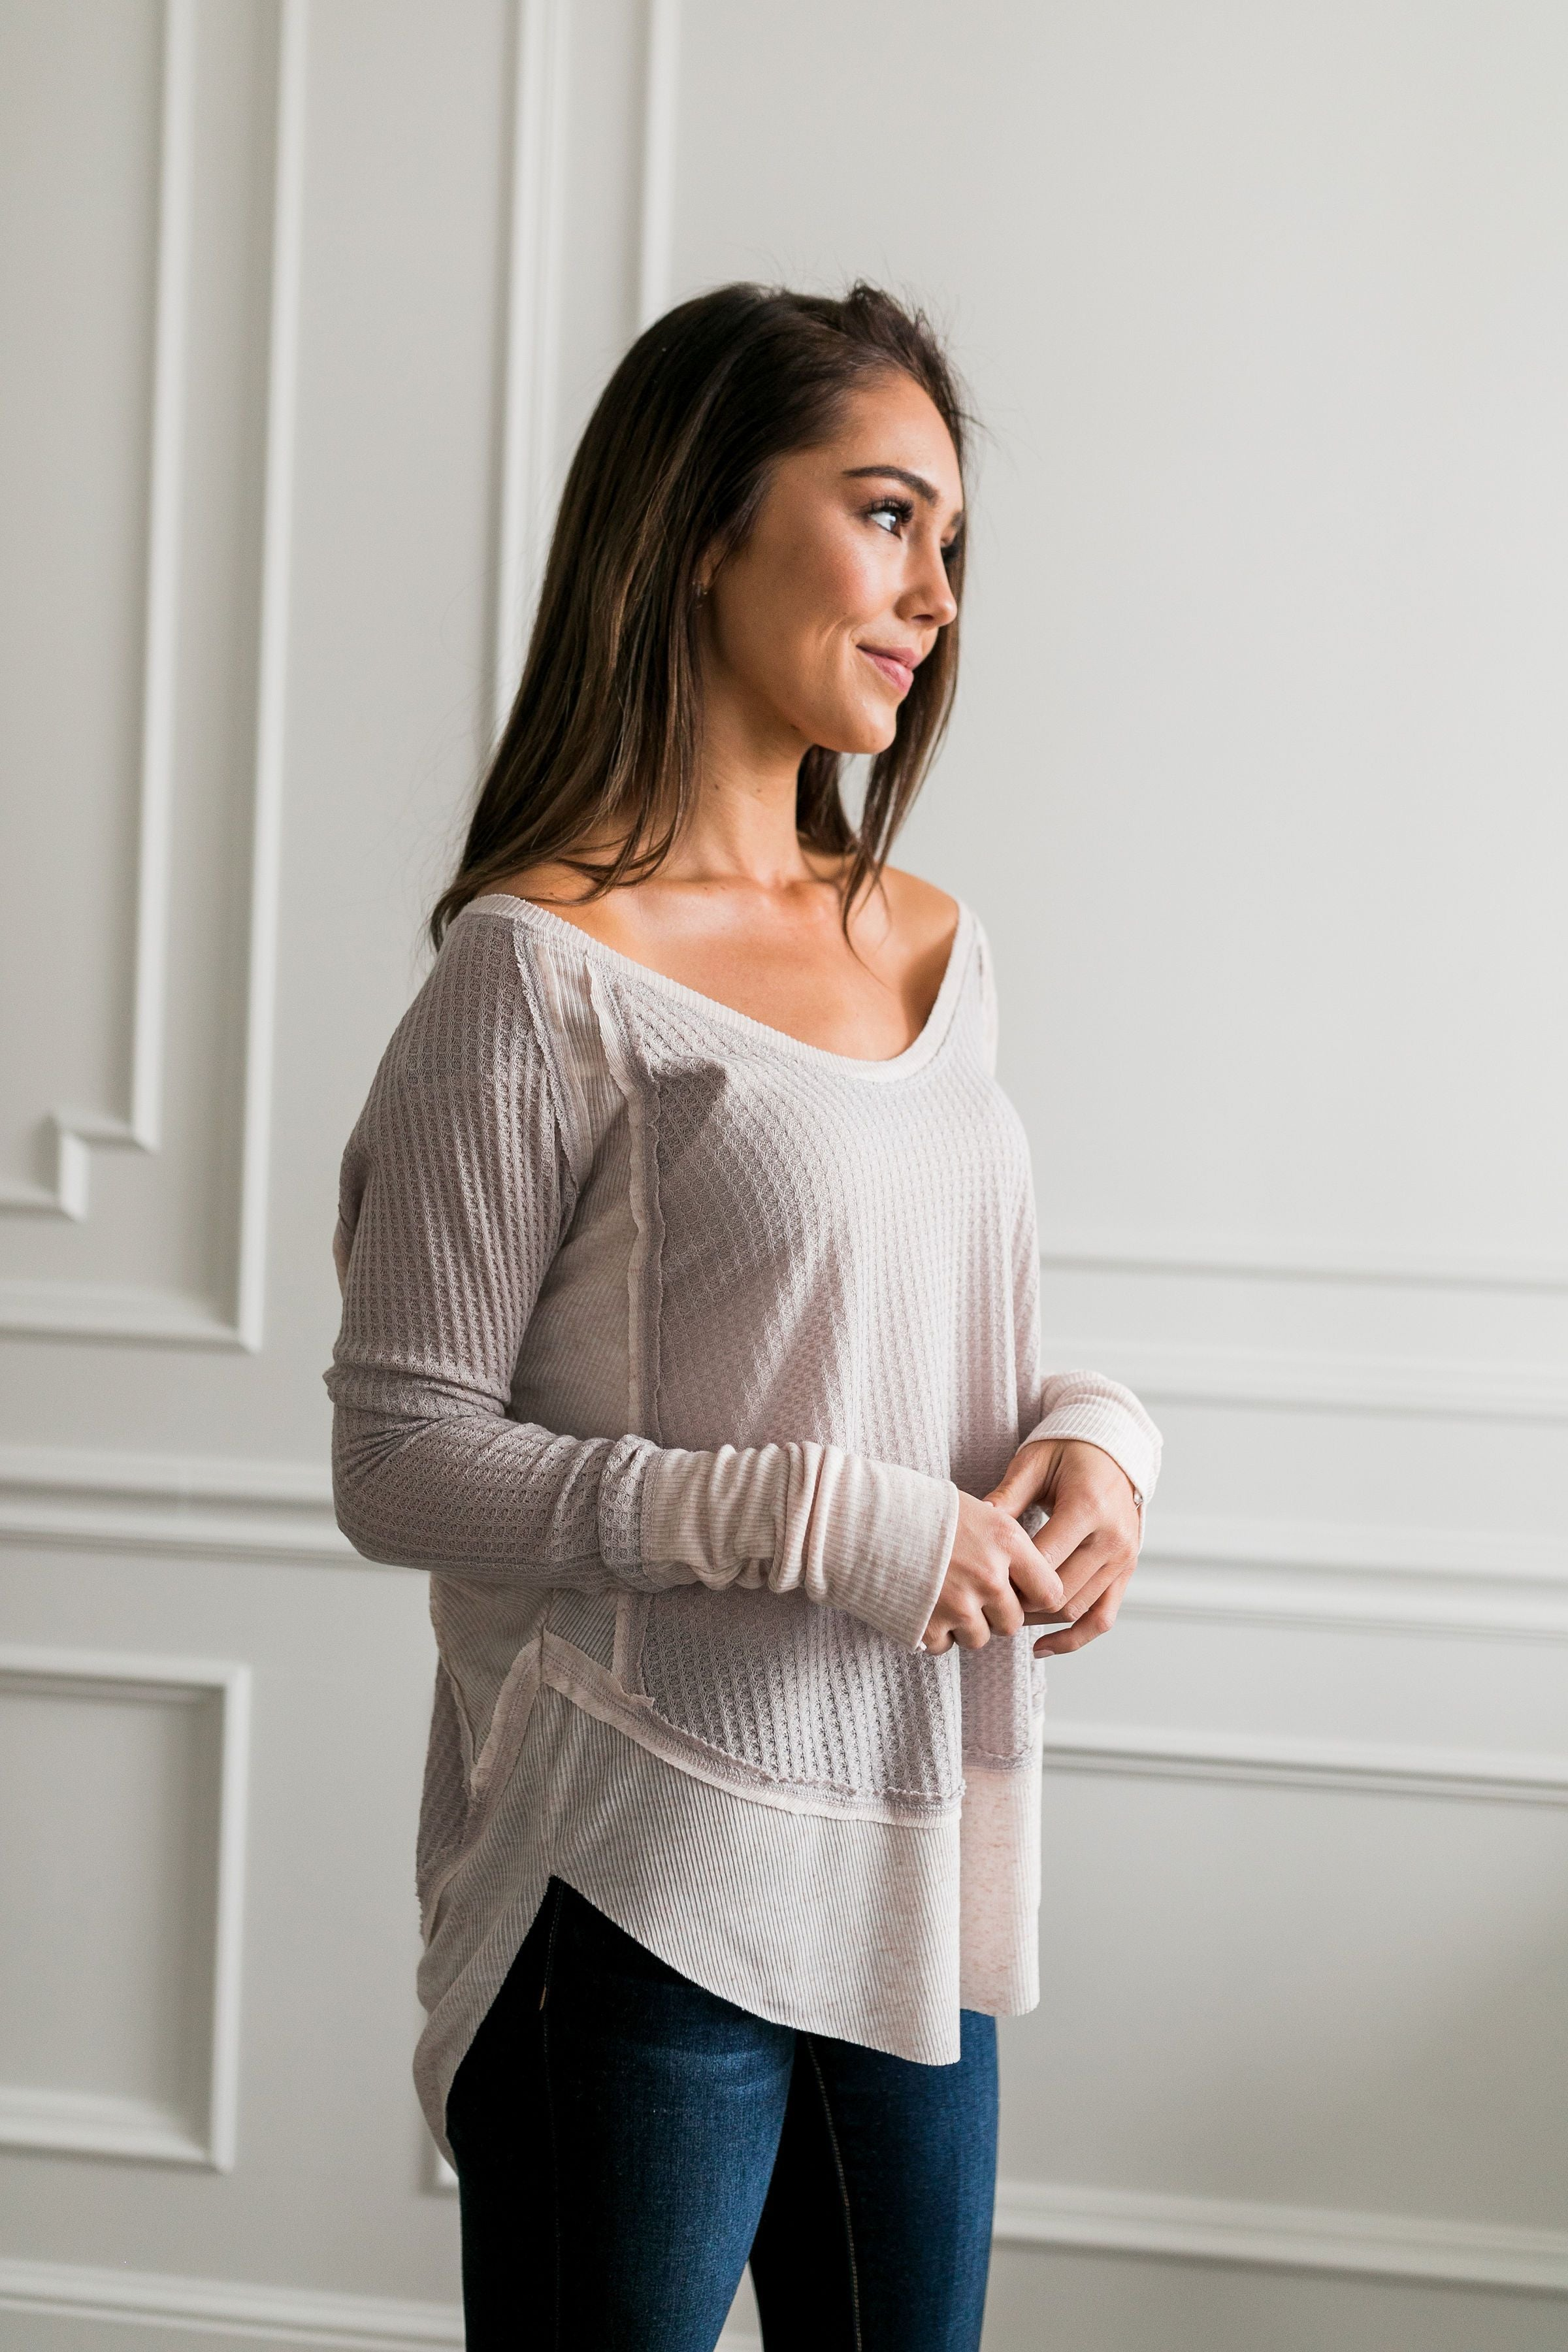 Easy Breezy Beautiful Layered Tee